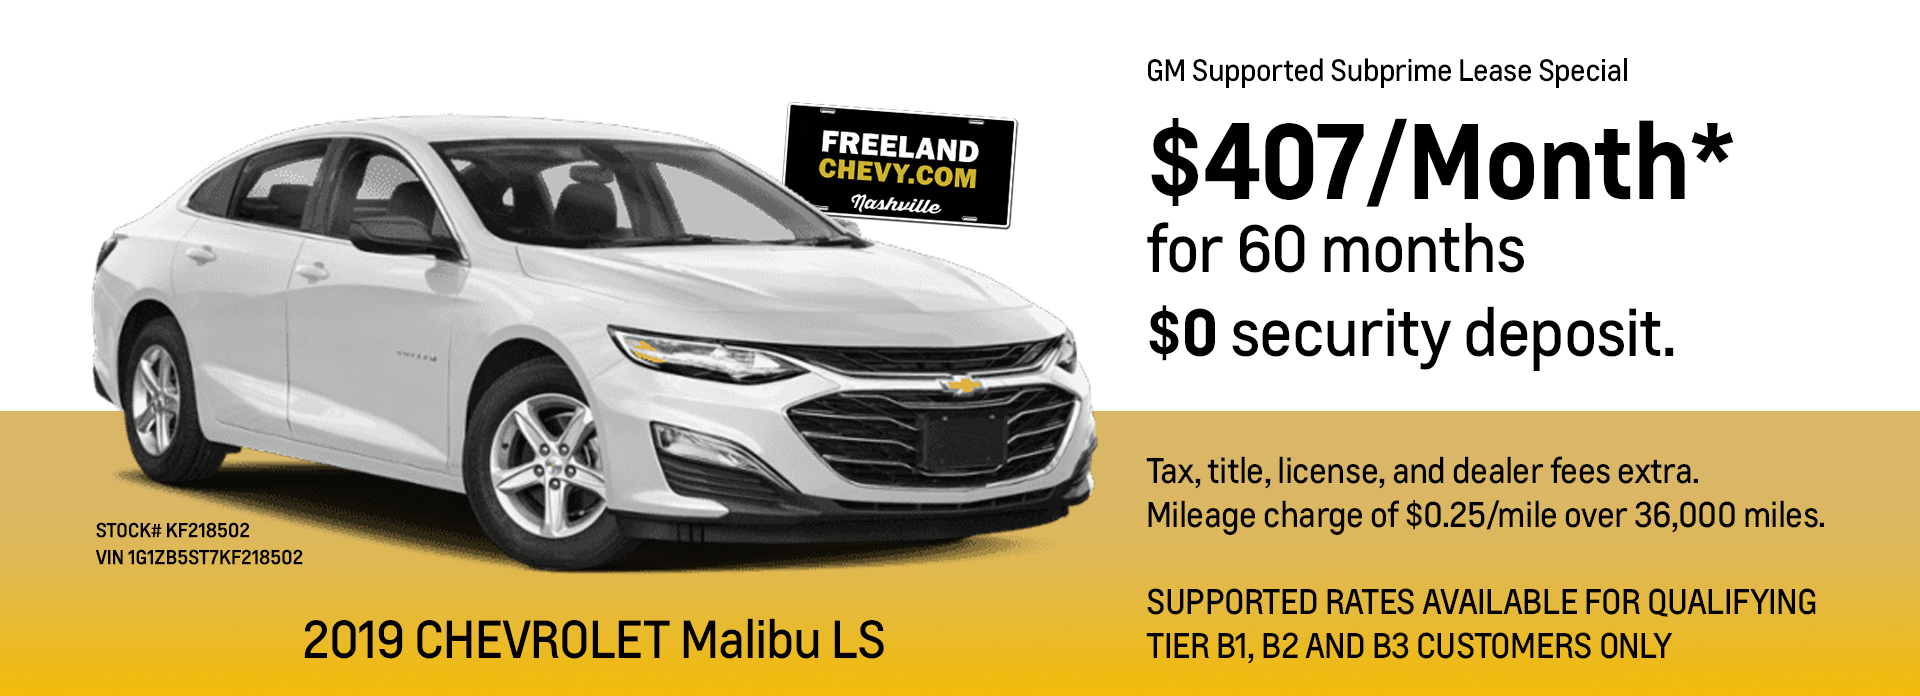 GM Supported Subprime Lease Special - 2019 Chevy Malibu LS